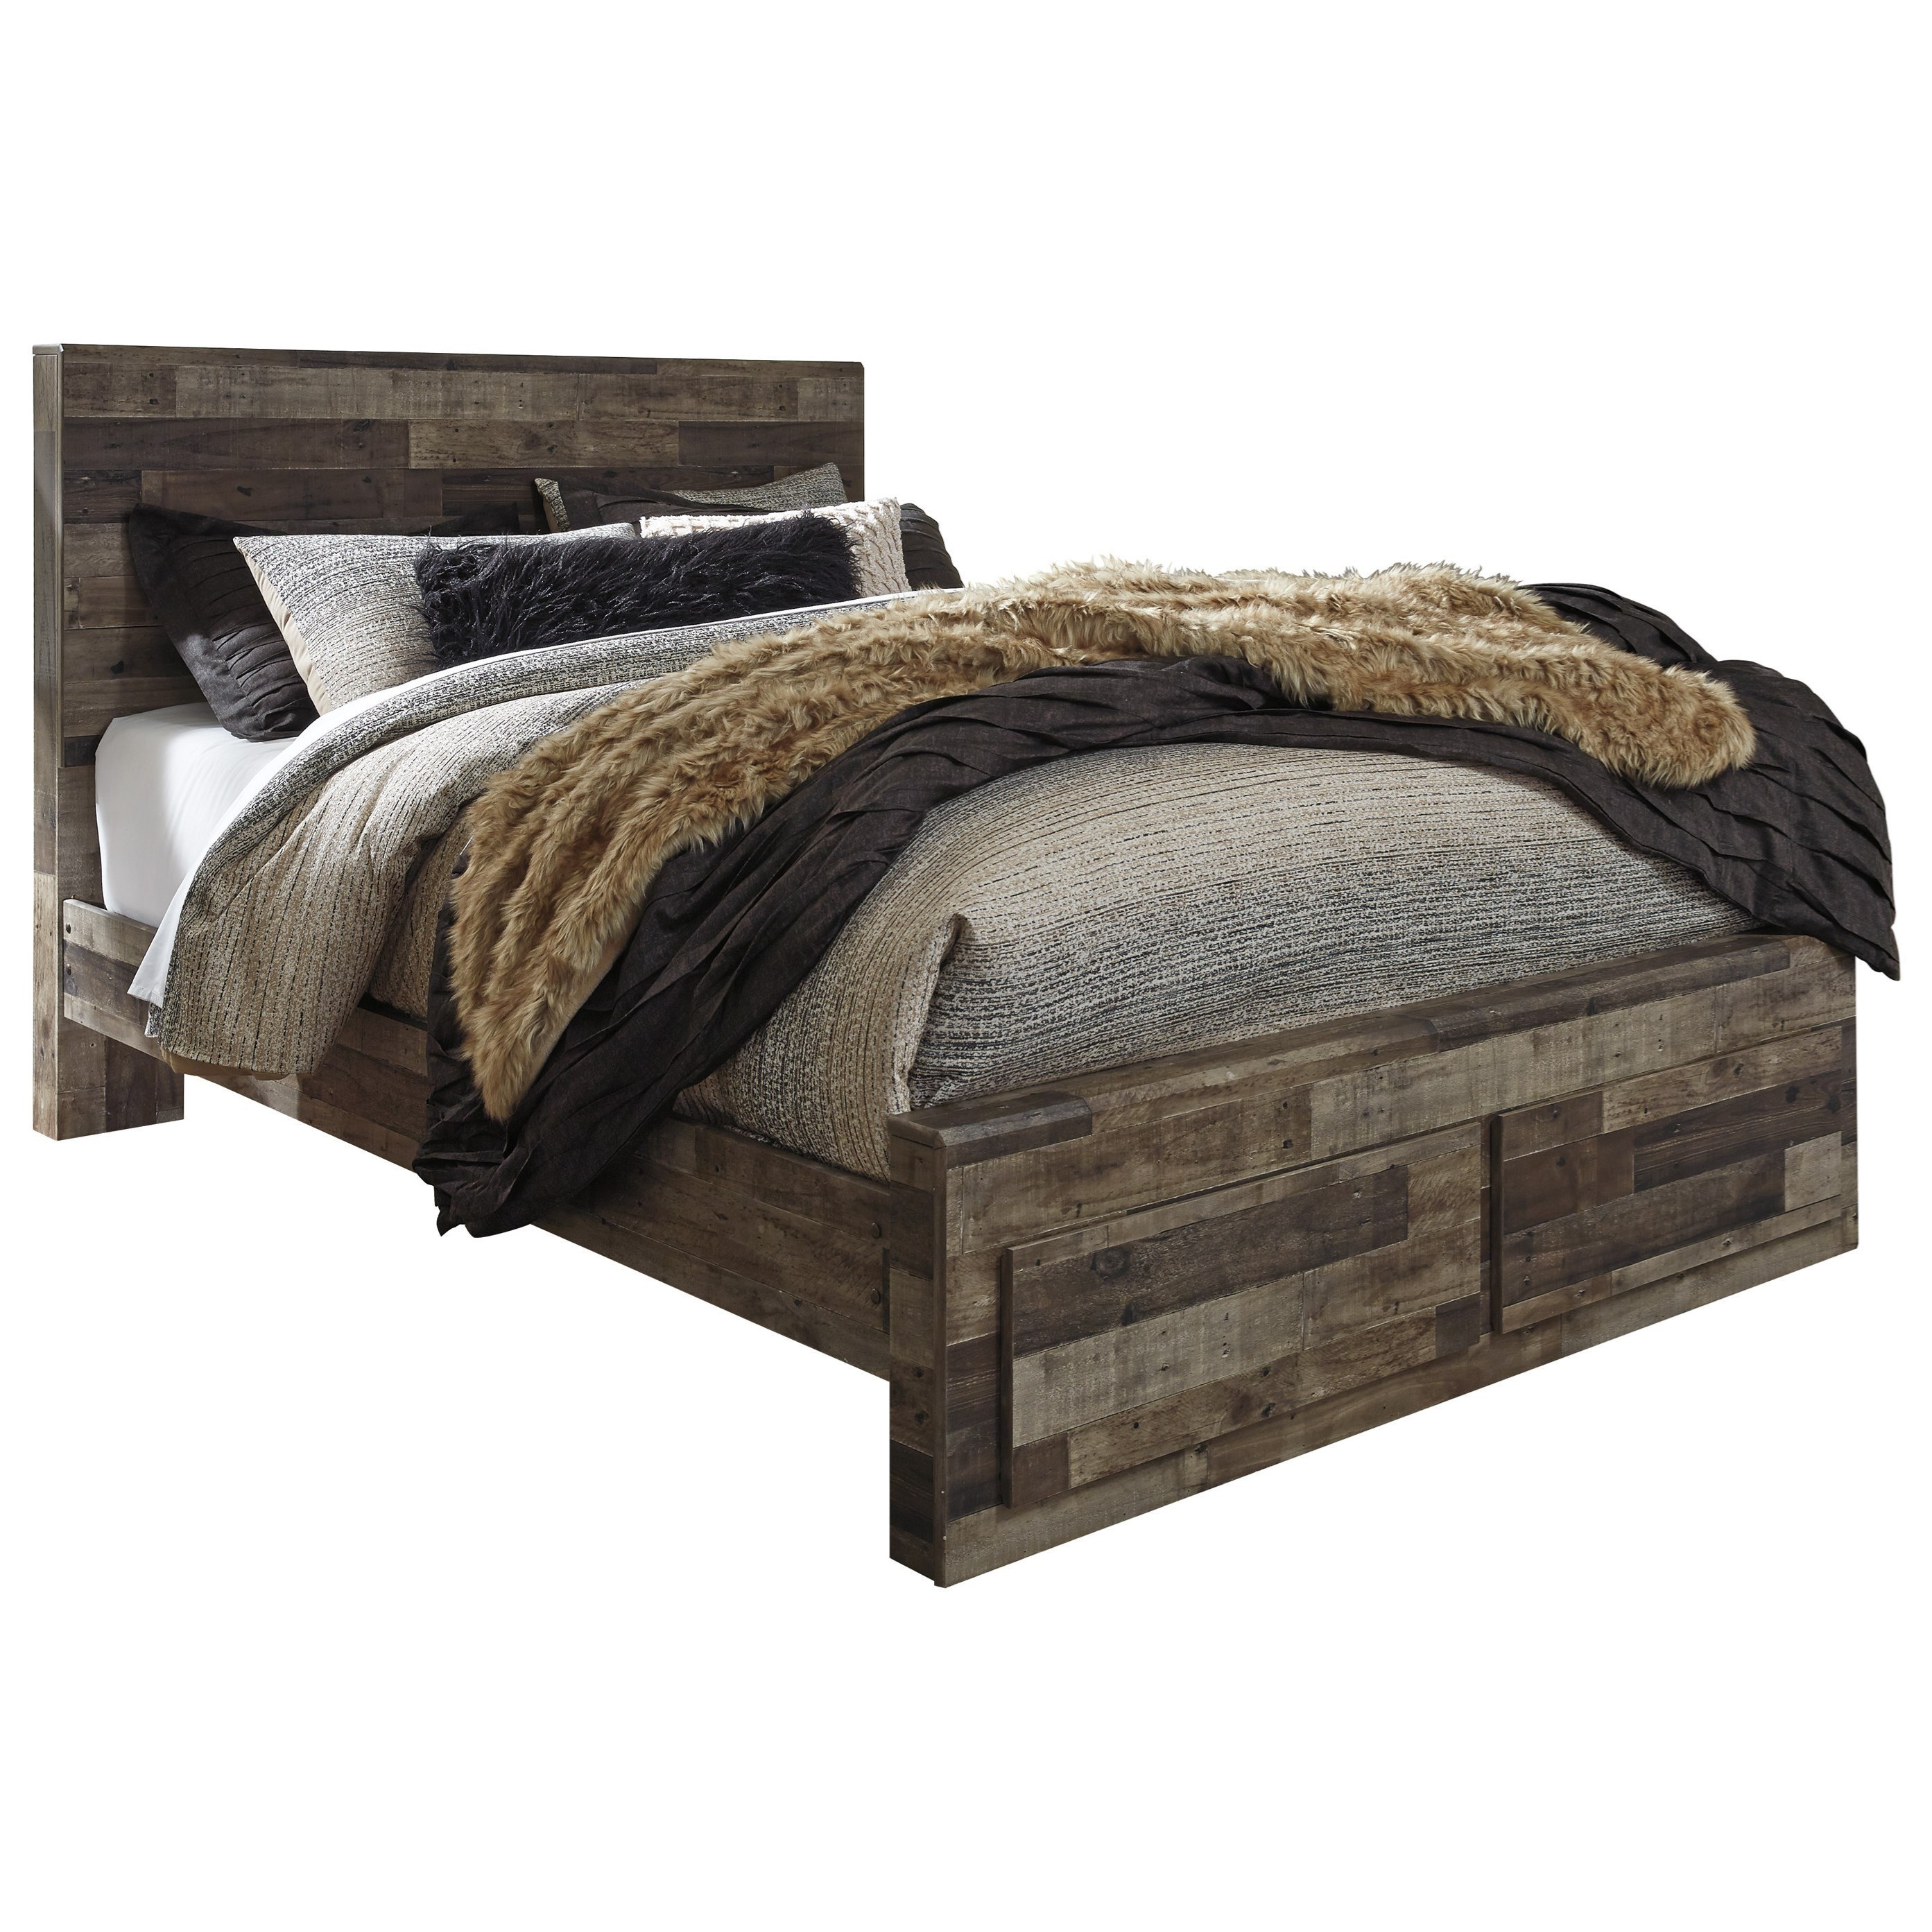 Benchcraft By Ashley Derekson Rustic Modern Queen Storage Bed With 2 Footboard Drawers Royal Furniture Platform Beds Low Profile Beds